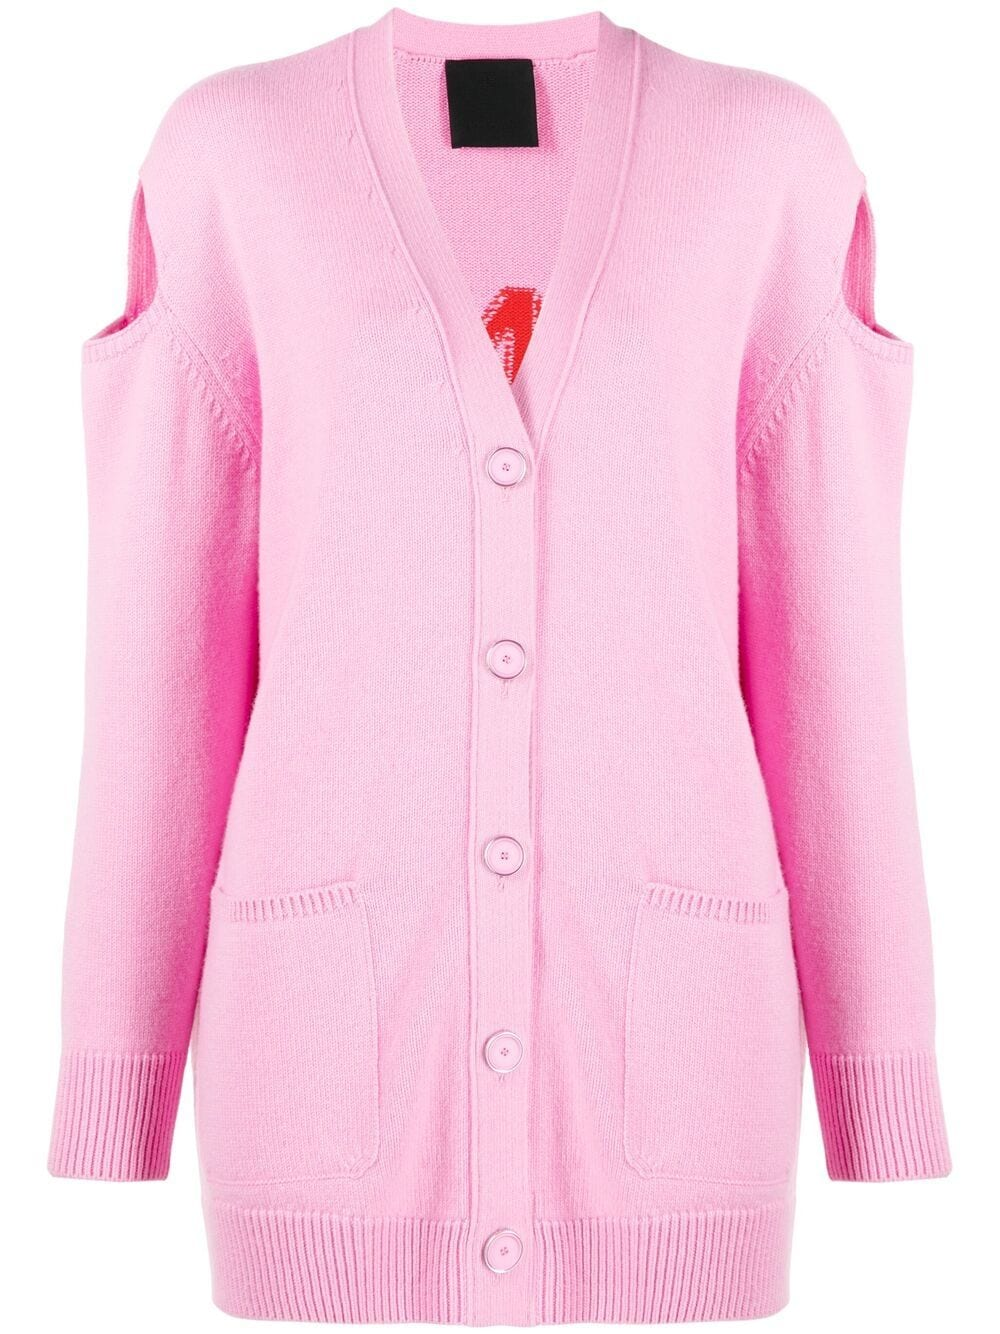 Cardigan in lana e cashmere rosa e rosso con logo Givenchy ricamato GIVENCHY | Cardigan | BW90CN4Z9L910